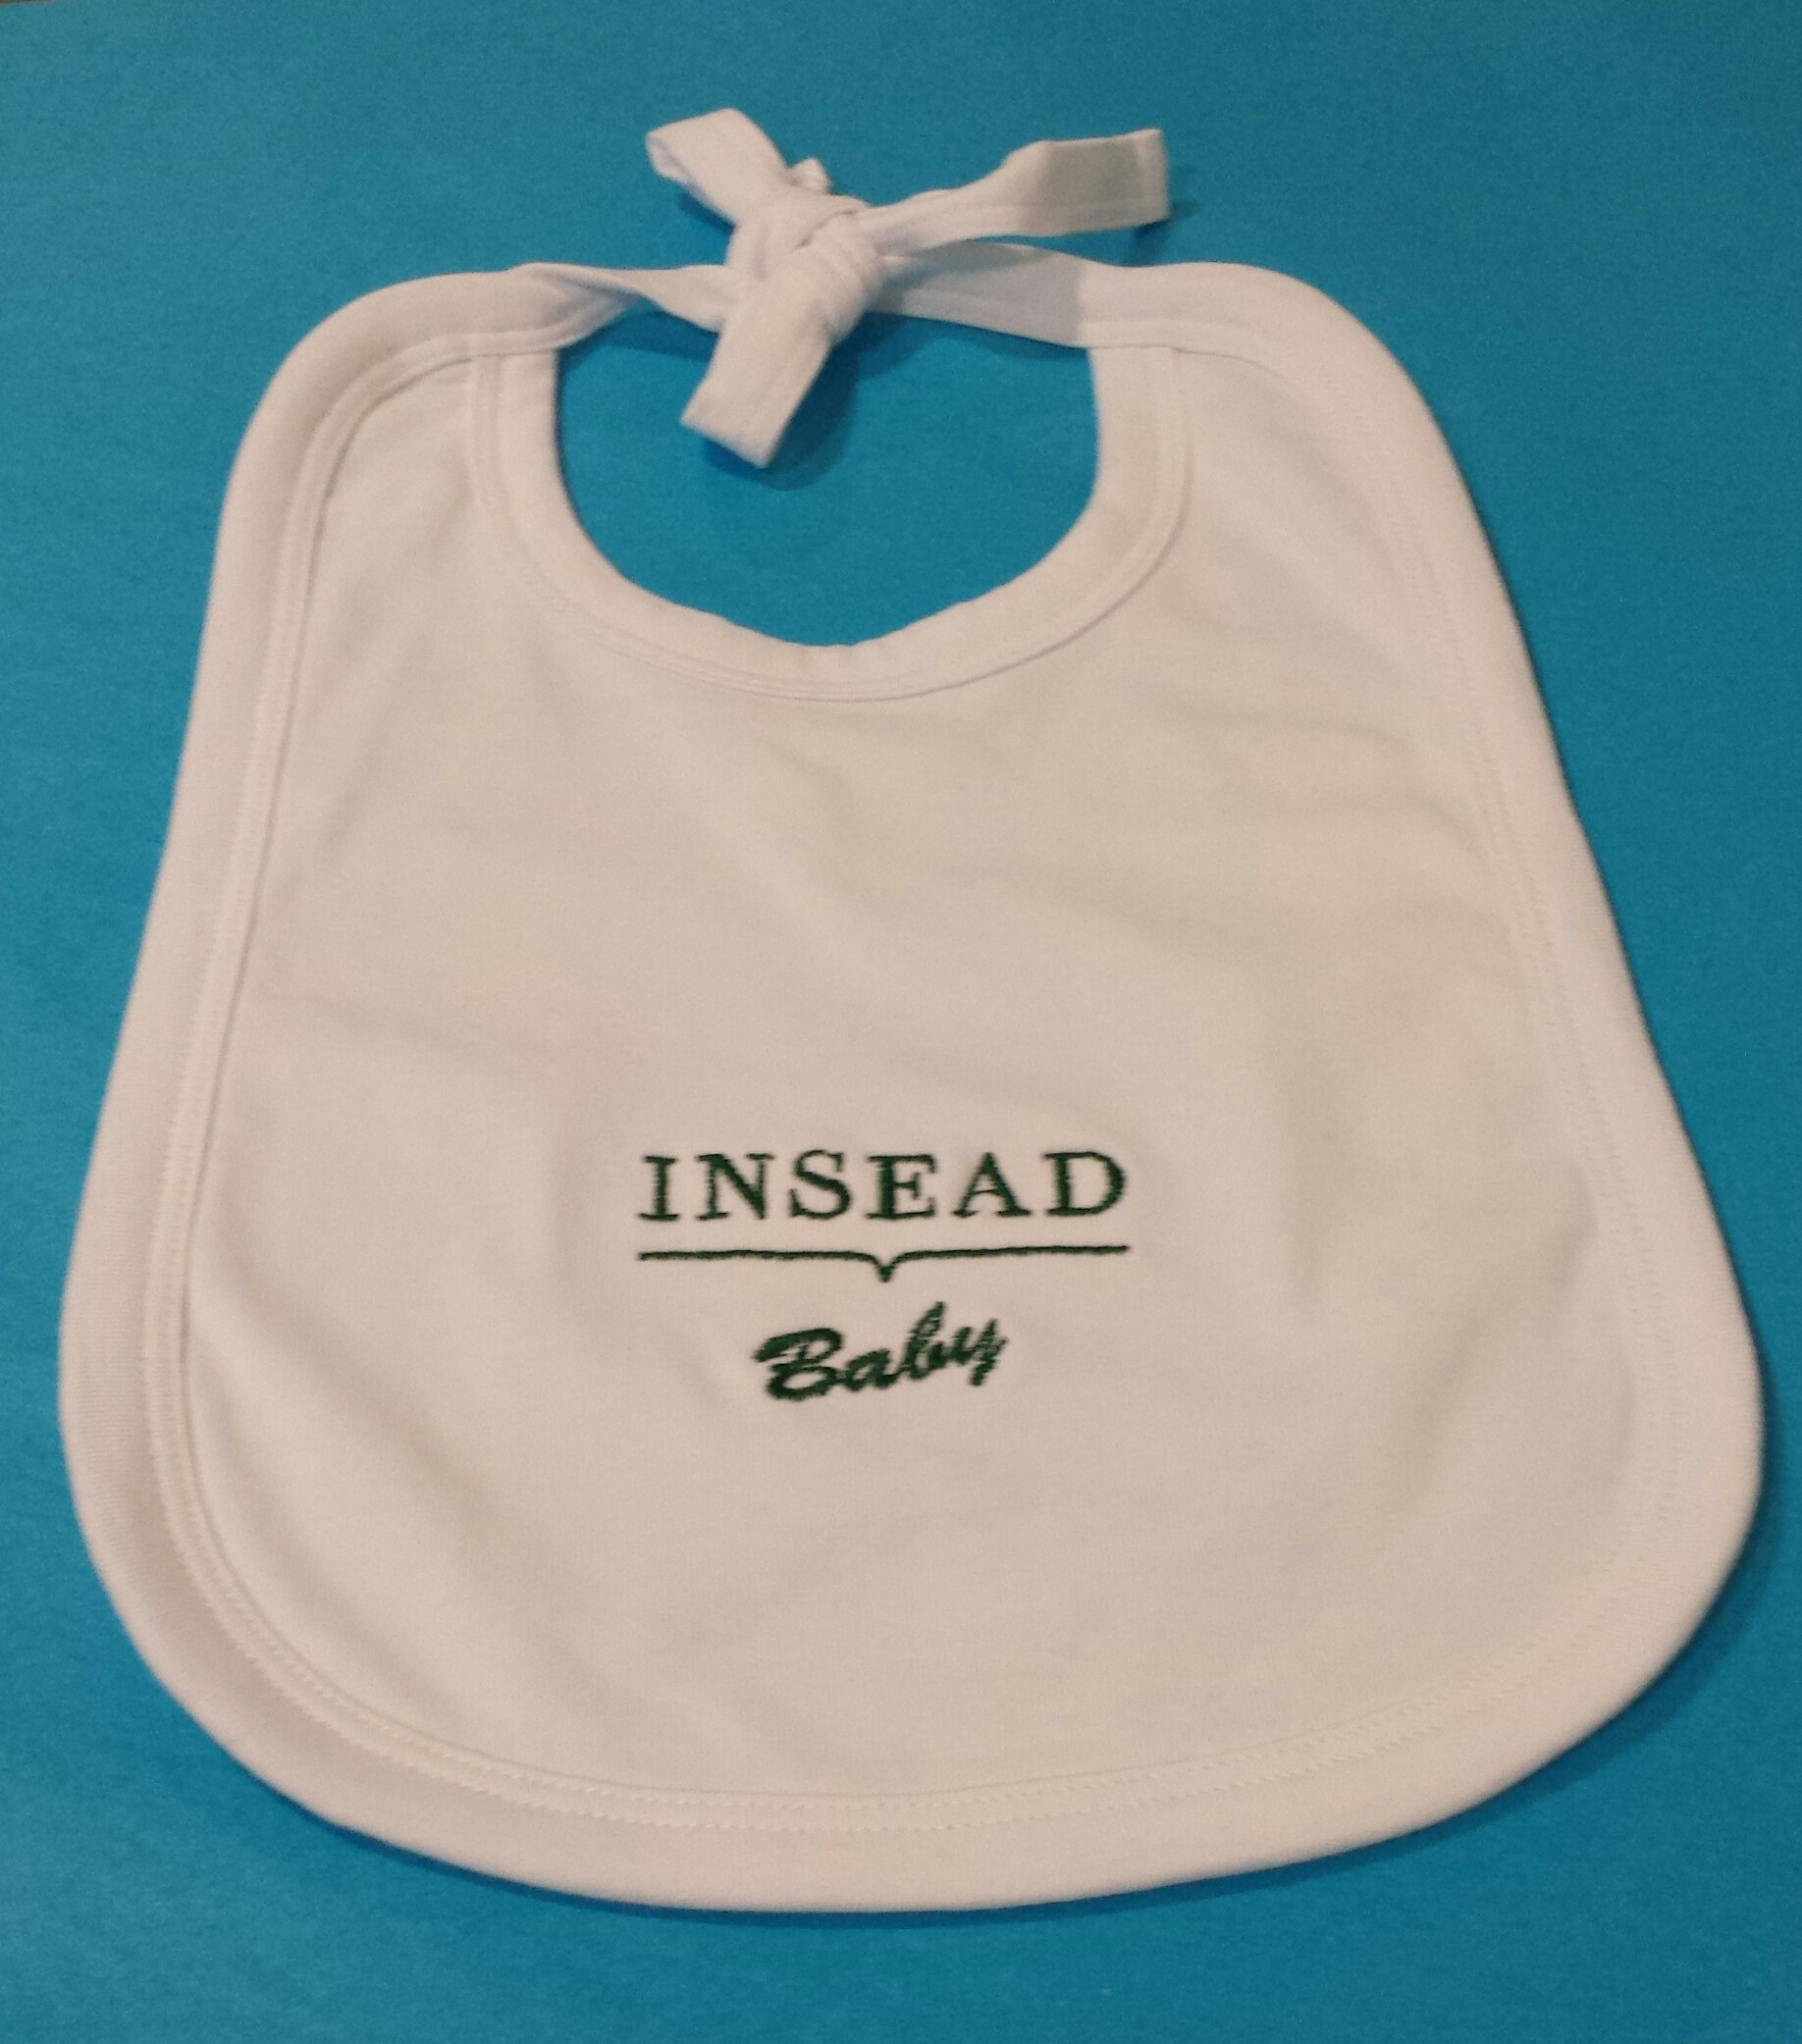 Foot Note Insead Bib Boutique Double Click On Above Image To View Full Picture